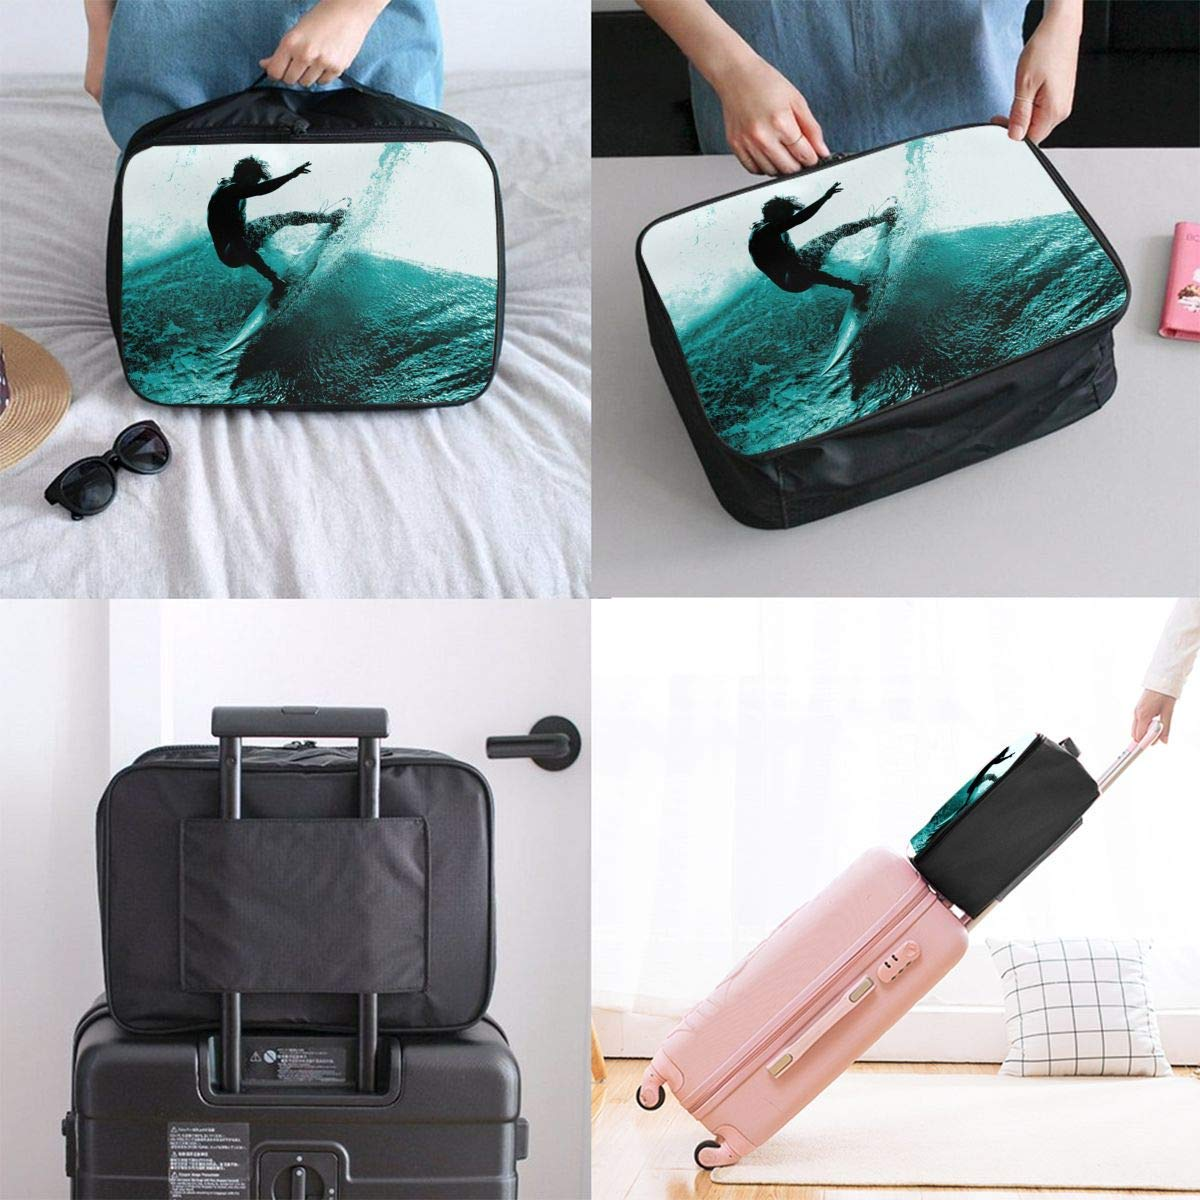 Lightweight Large Capacity Portable Duffel Bag for Men /& Women Summer Surfing Fun Travel Duffel Bag Backpack JTRVW Luggage Bags for Travel